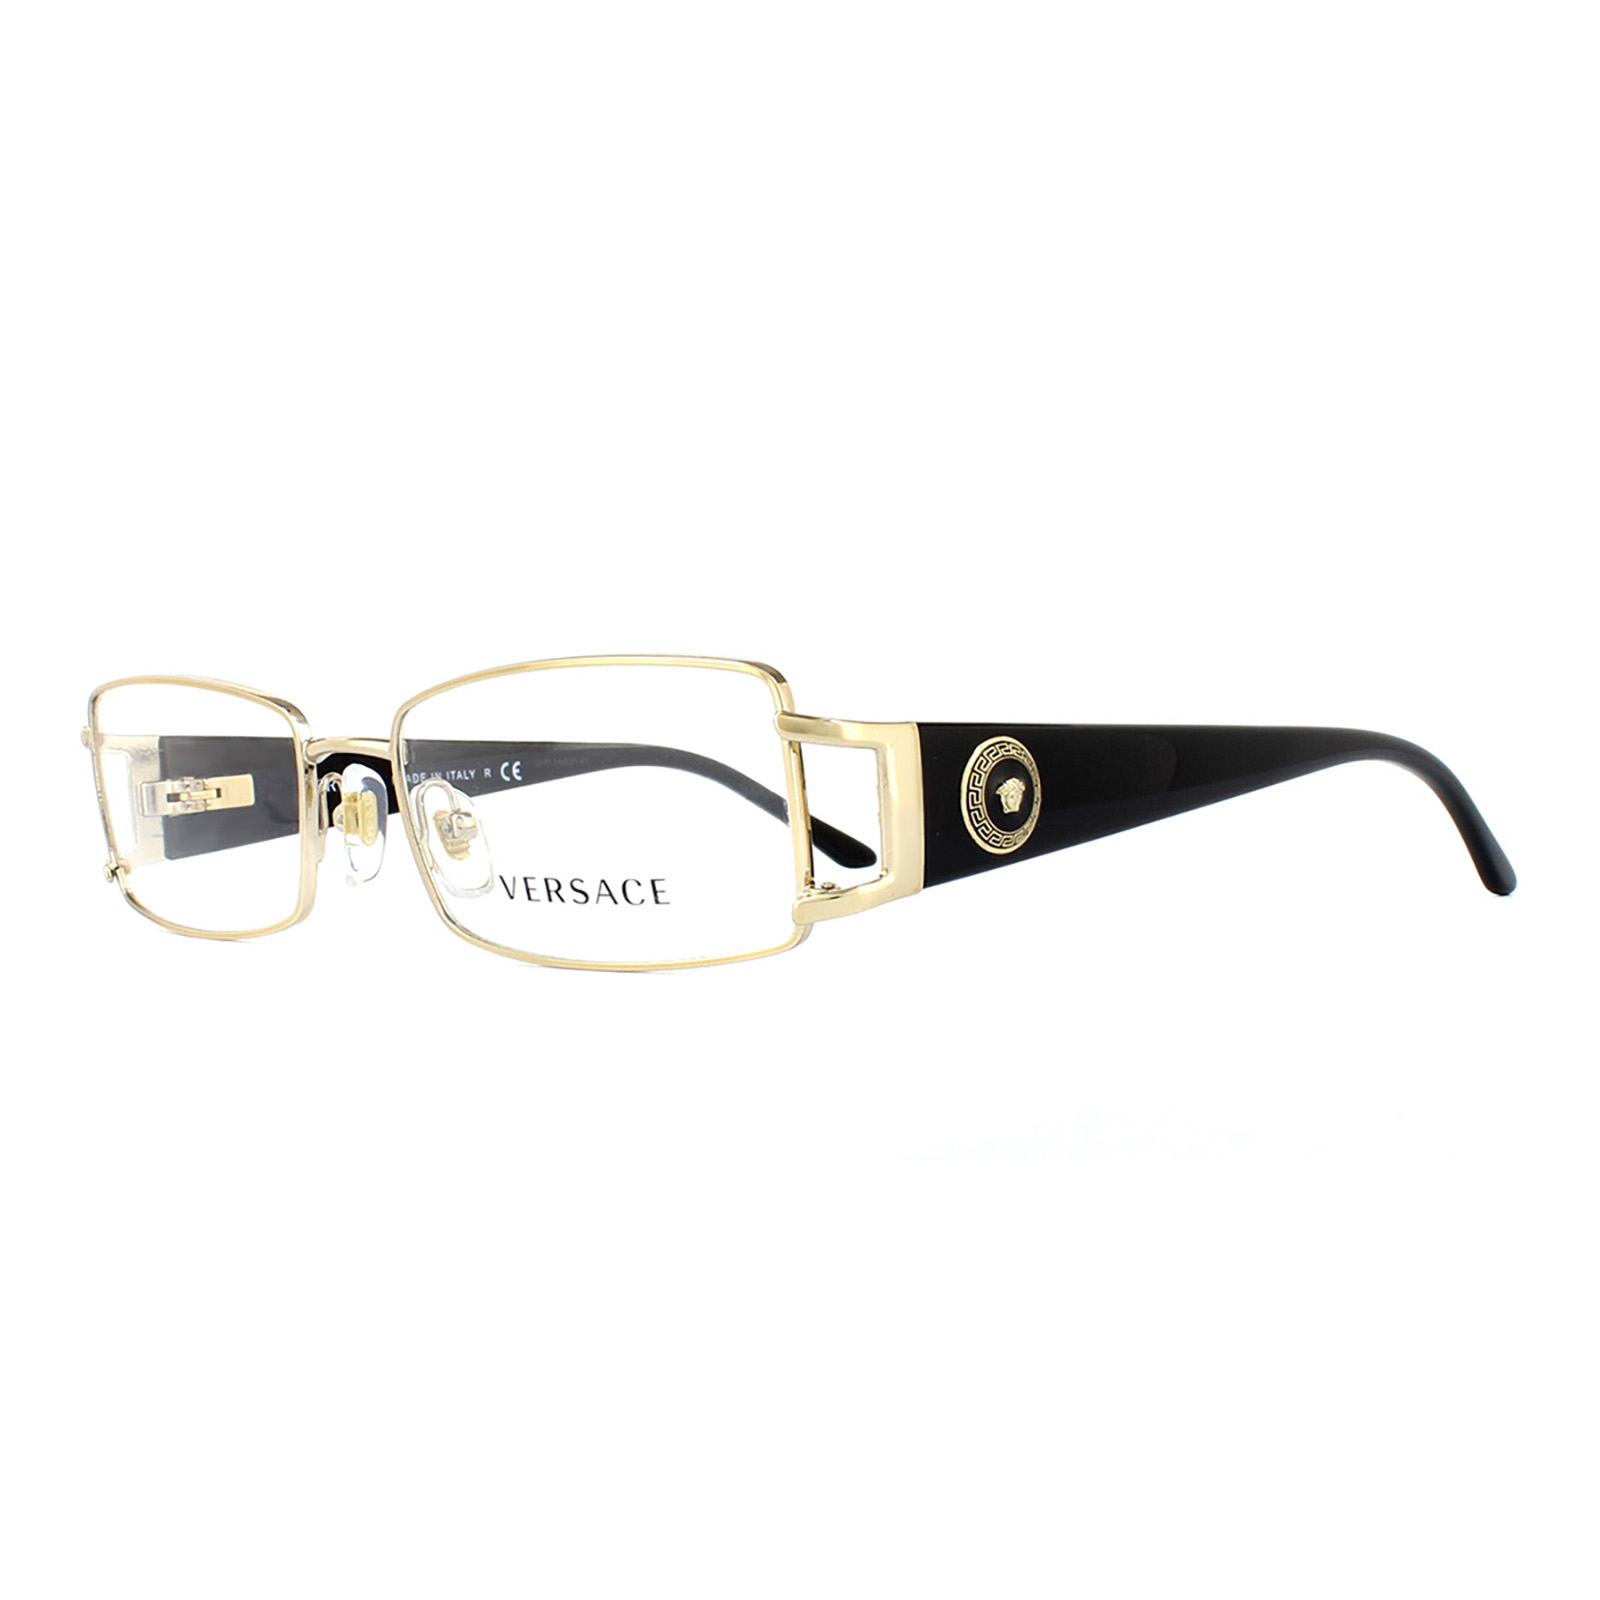 cheap versace 1163m glasses frames discounted sunglasses